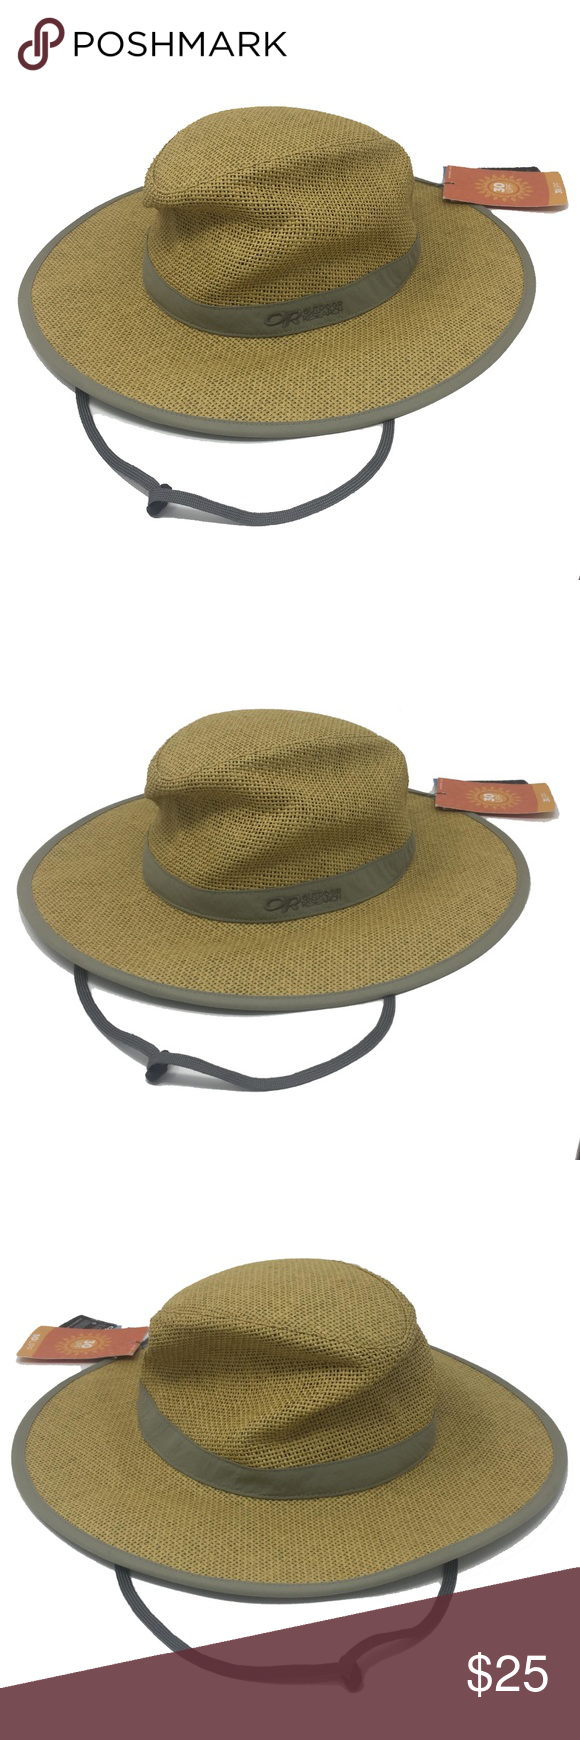 efdb454d911 Outdoor Research Papyrus Brim Sun Hat Khaki OR NEW Outdoor Research Papyrus  Wide Brim Sun Hat